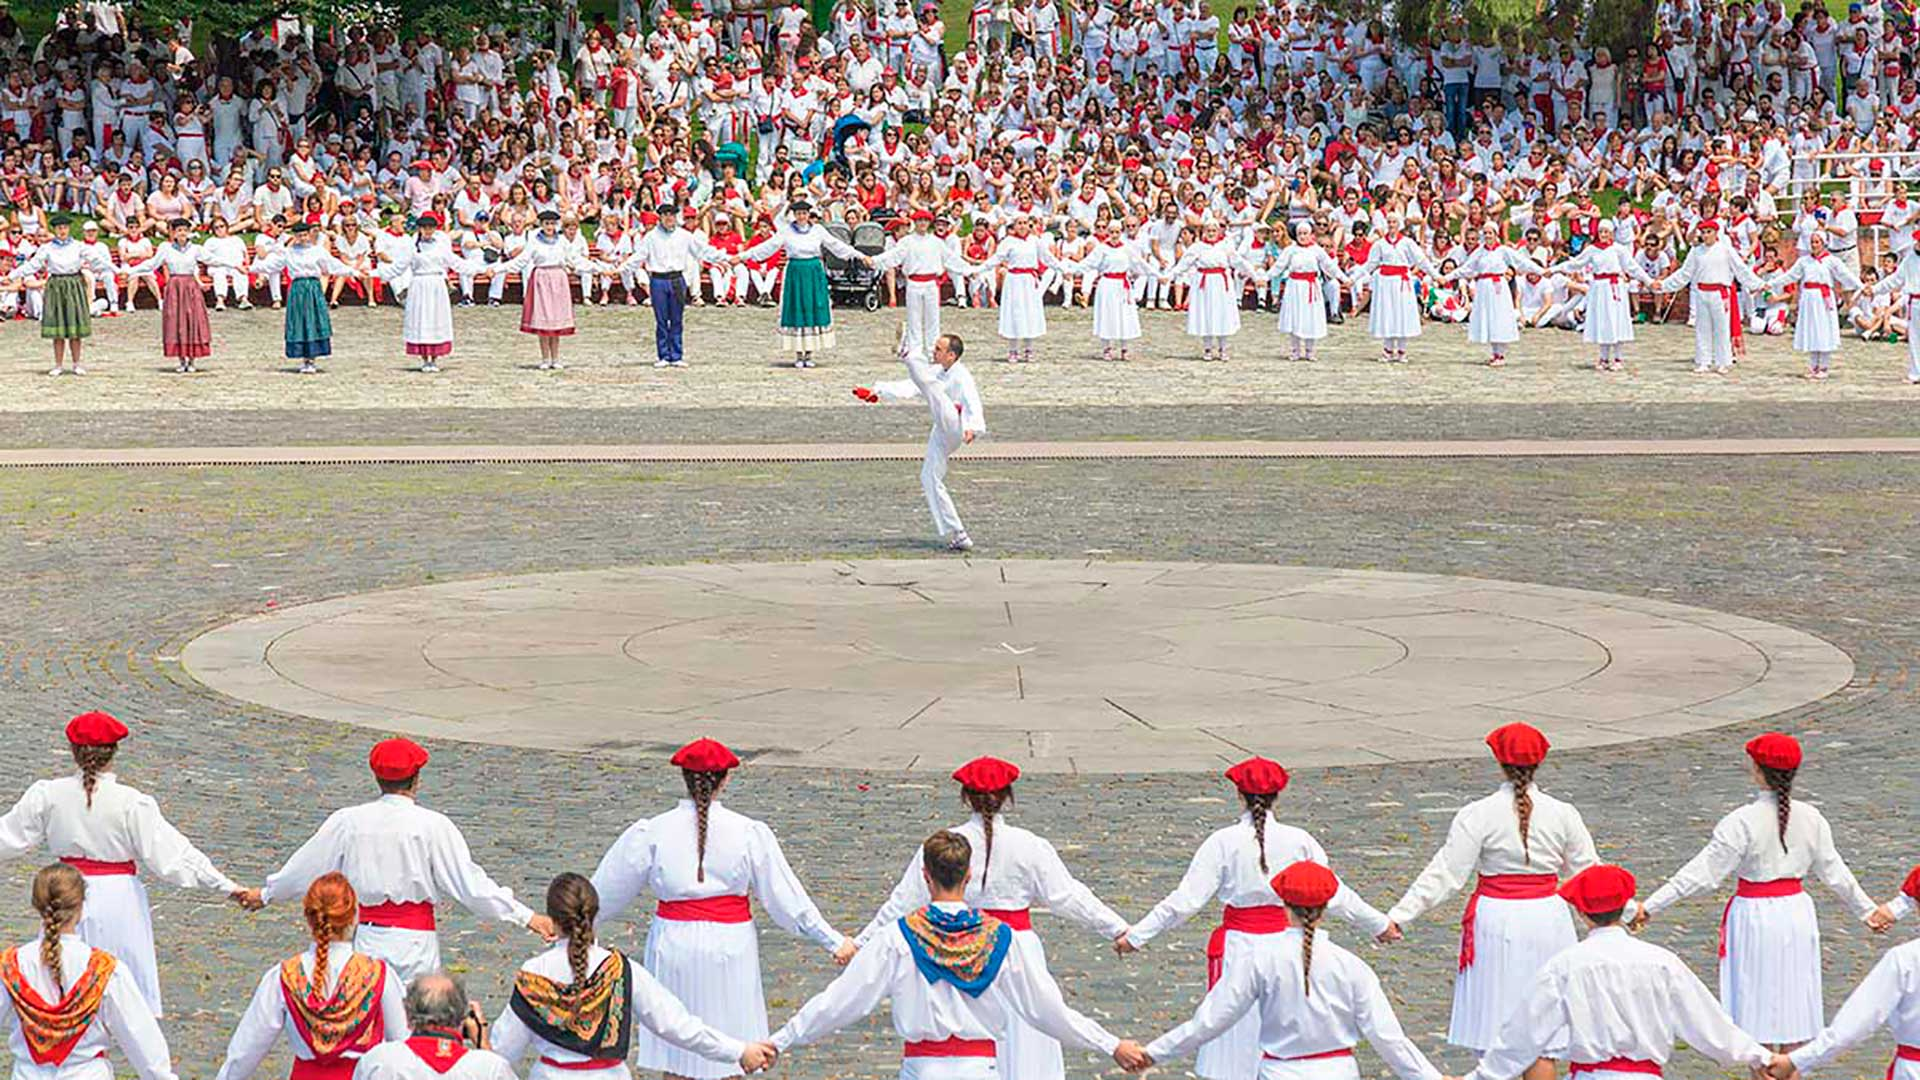 San Fermin festival includes a multitude of cultural activities, explore it with Paladar y Tomar